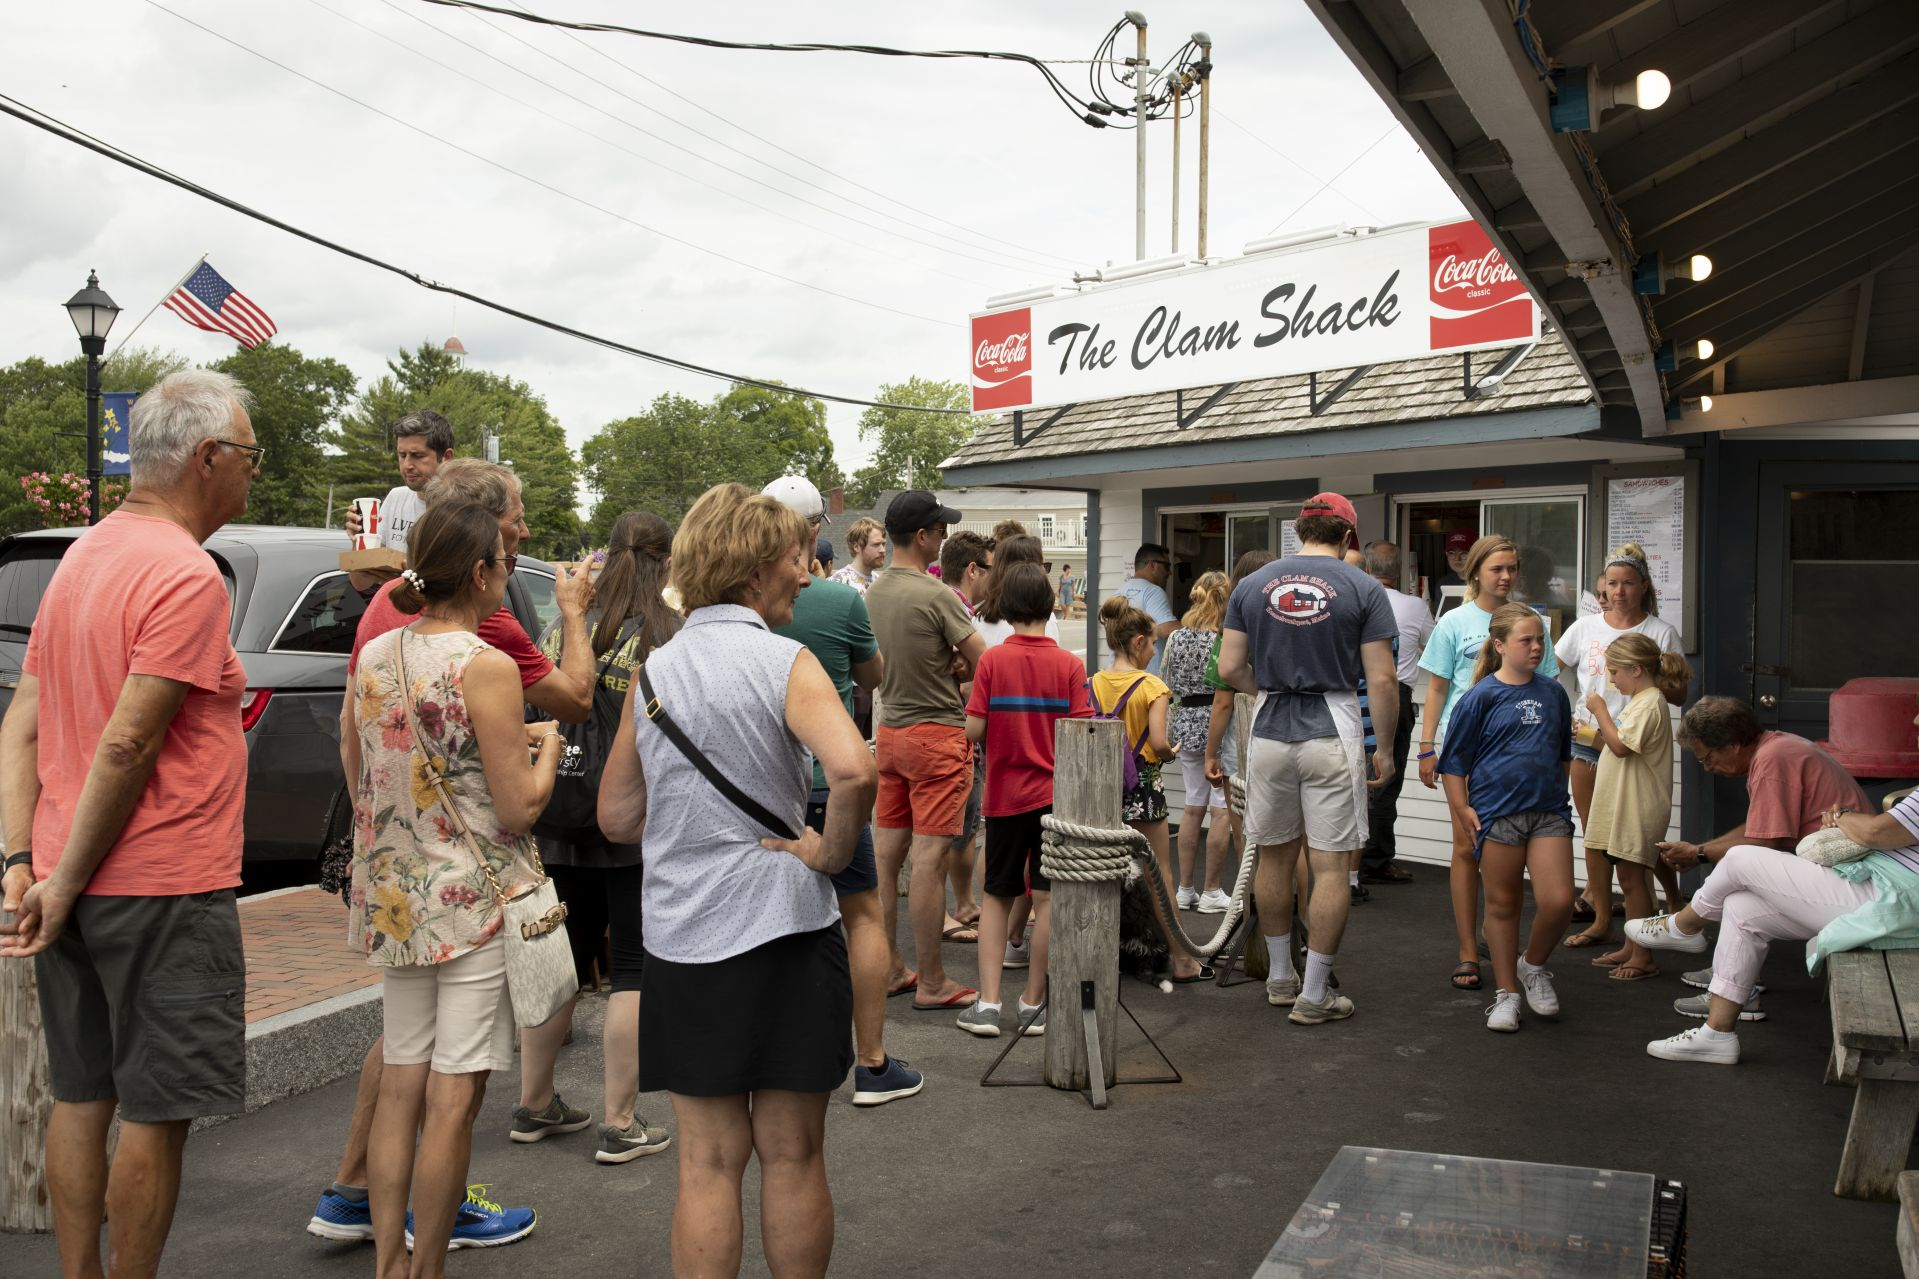 A daily site in Kennebunk on any summer day: a line of tourists waiting to place their order at the Clam Shack. (Phyllis Graber Jensen/Bates College)